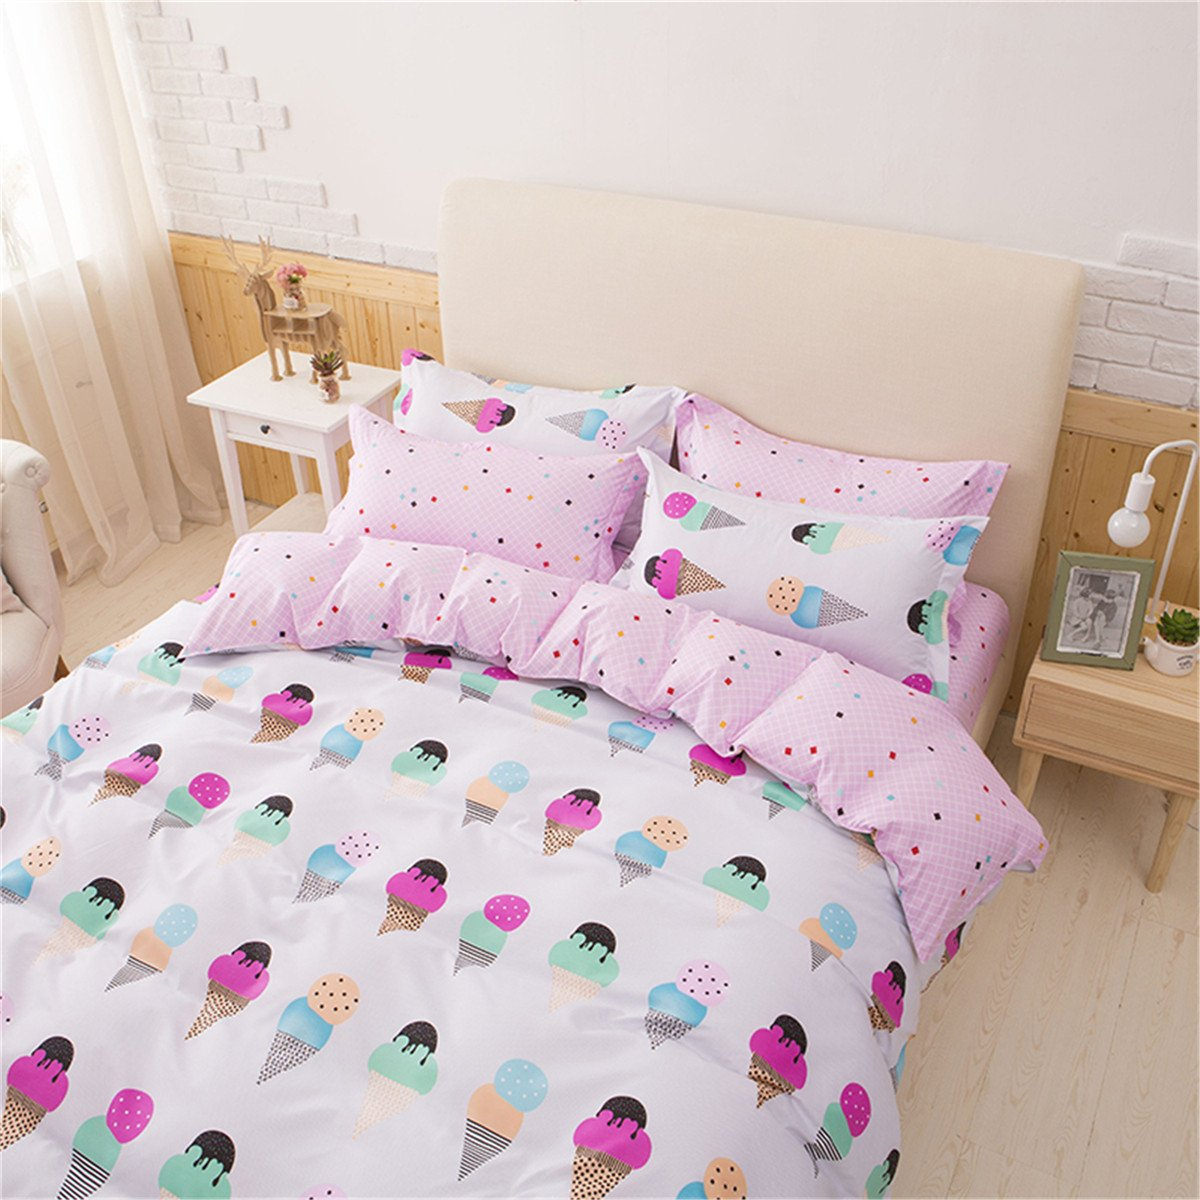 Sookie 3Pcs Cartoon Ice Cream Bedding (No Comforter and Sheet) Set for Kids Girls and Boys,Include Pink Duvet Cover +2 Pillowcases - Twin Size by Sookie (Image #1)